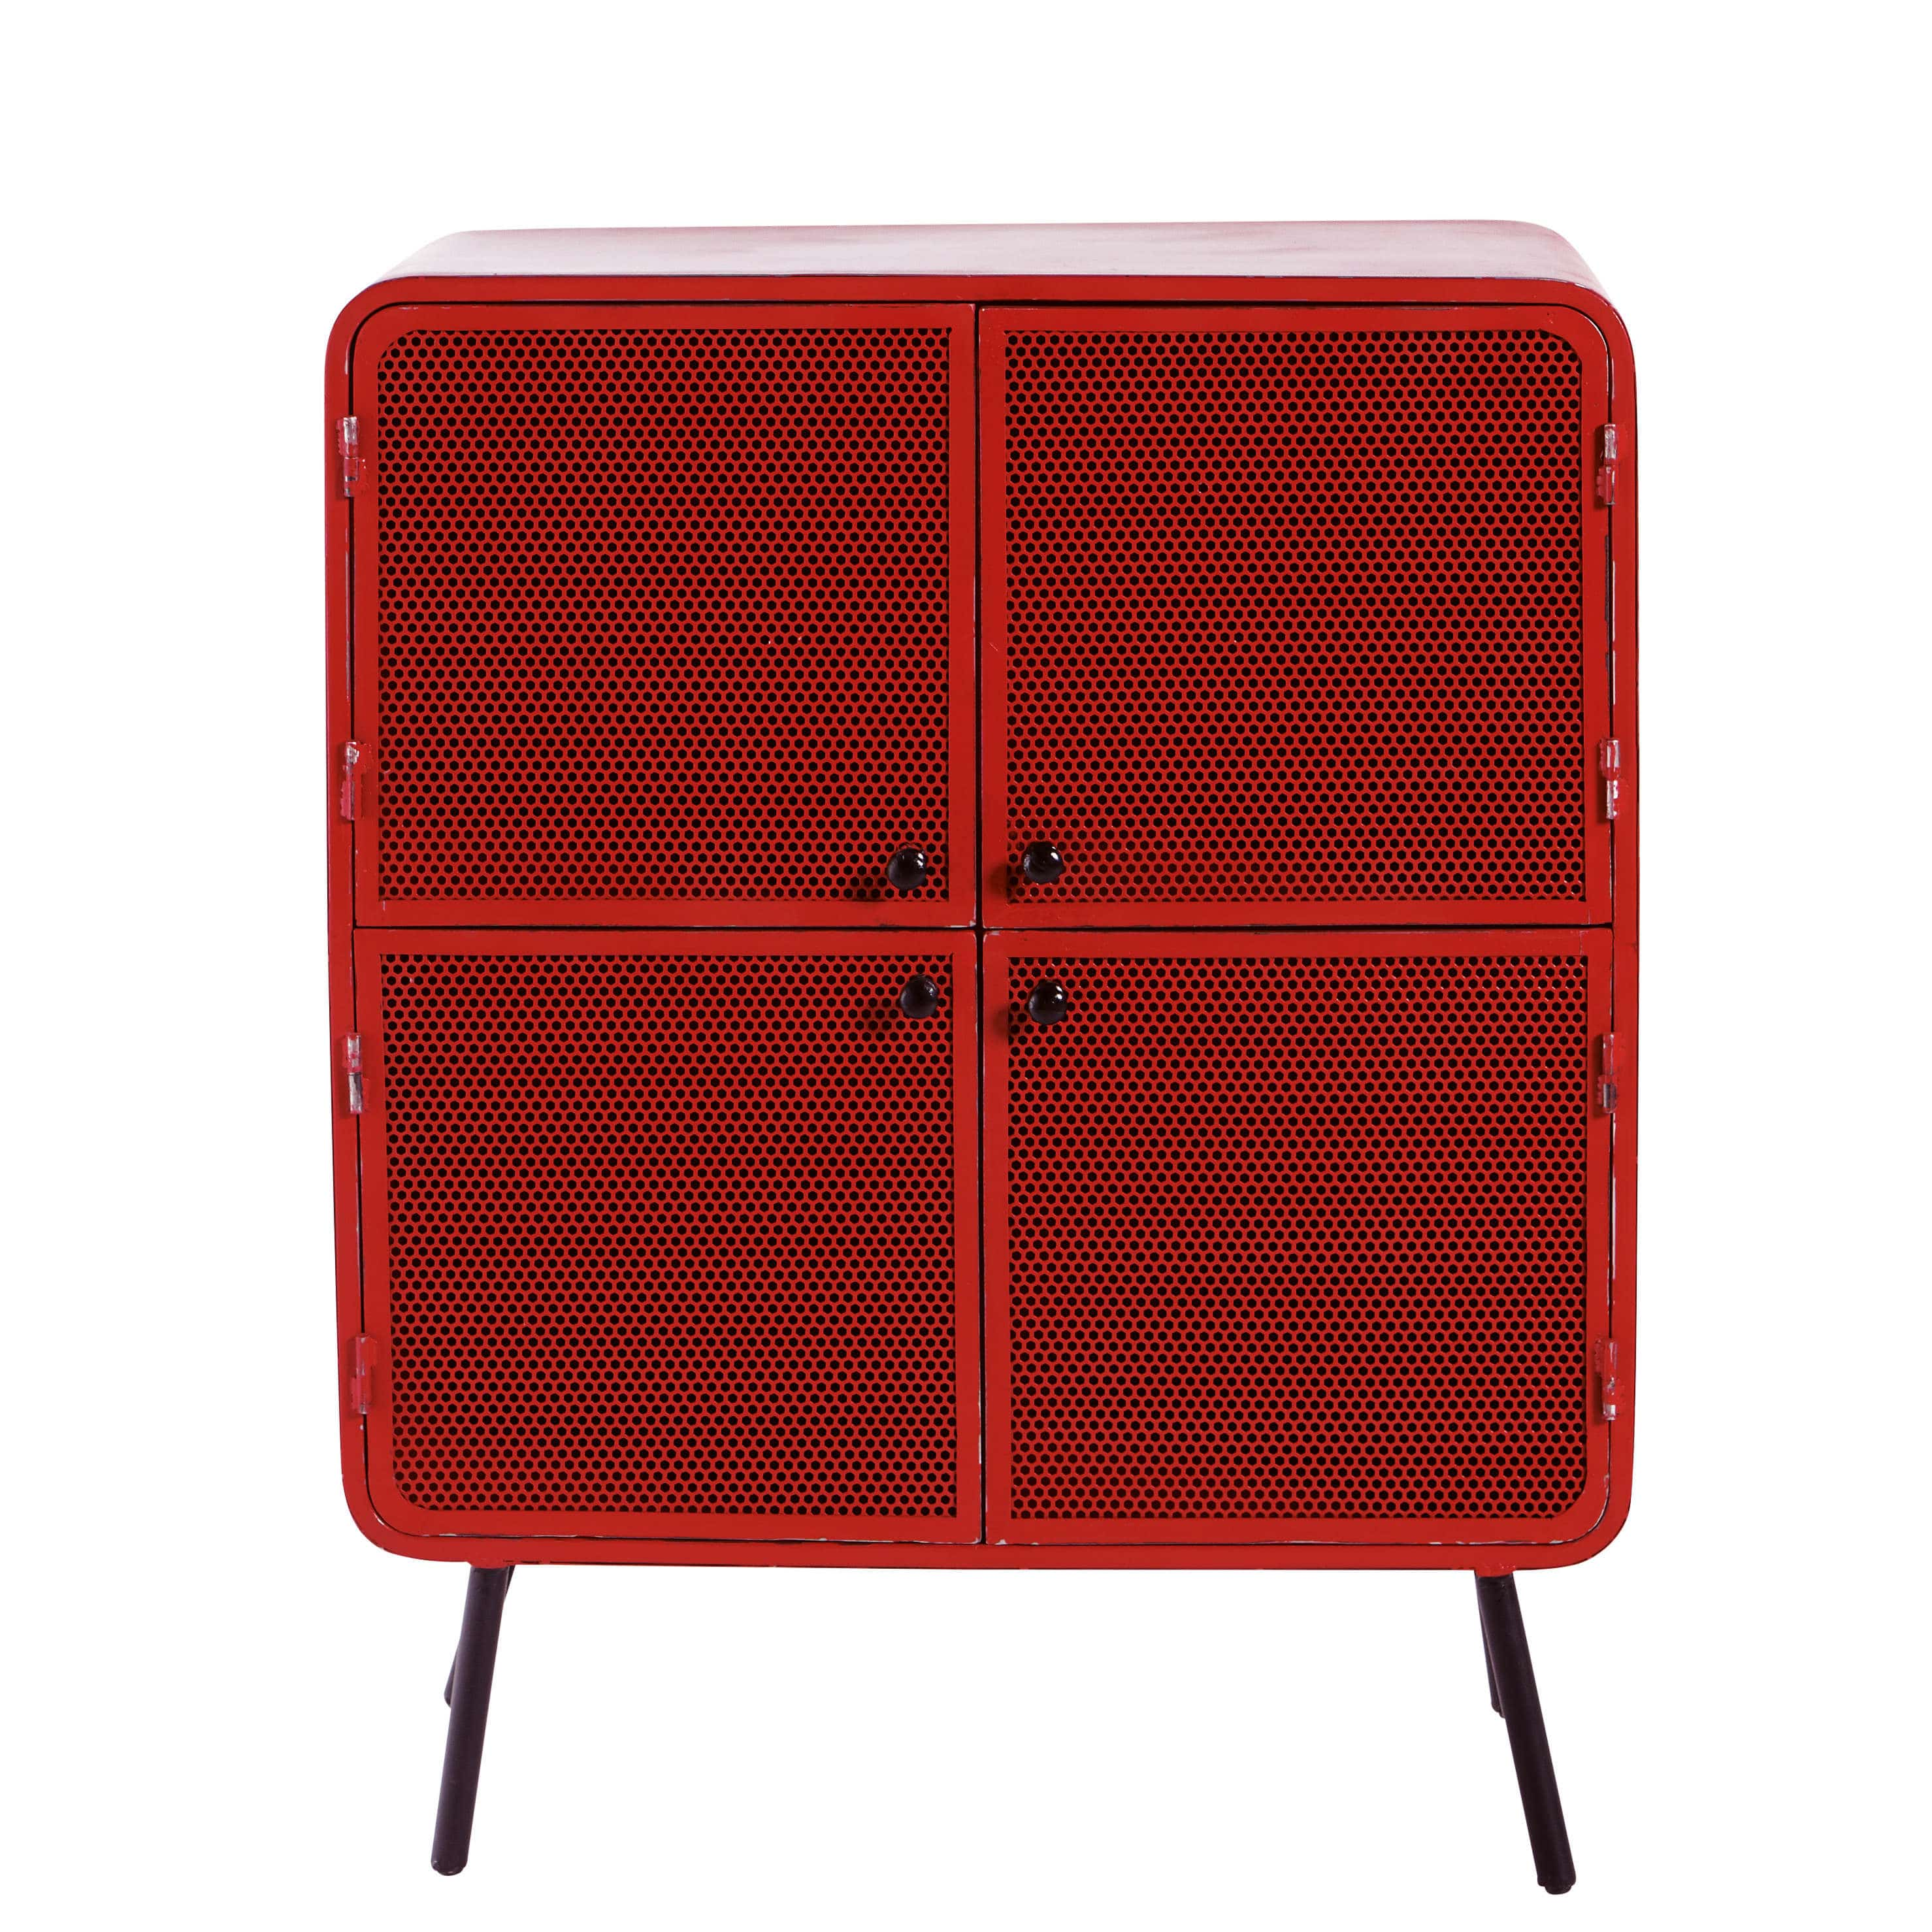 kommode aus metall b 80 cm rot knokke maisons du monde. Black Bedroom Furniture Sets. Home Design Ideas